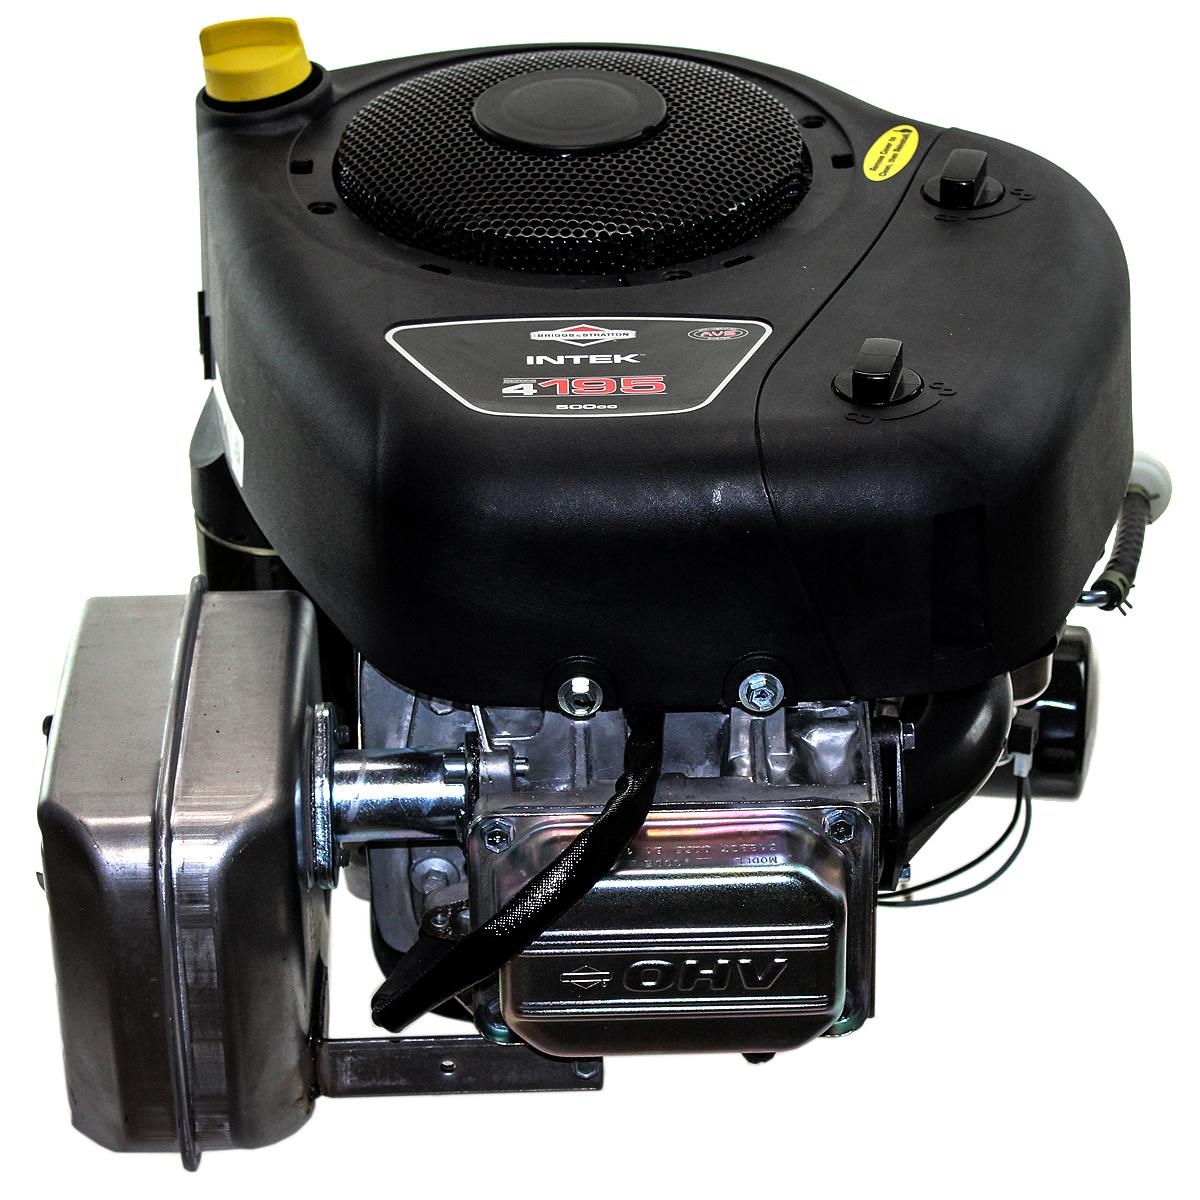 Dyt 4000 Engine : Craftsman dyt repower